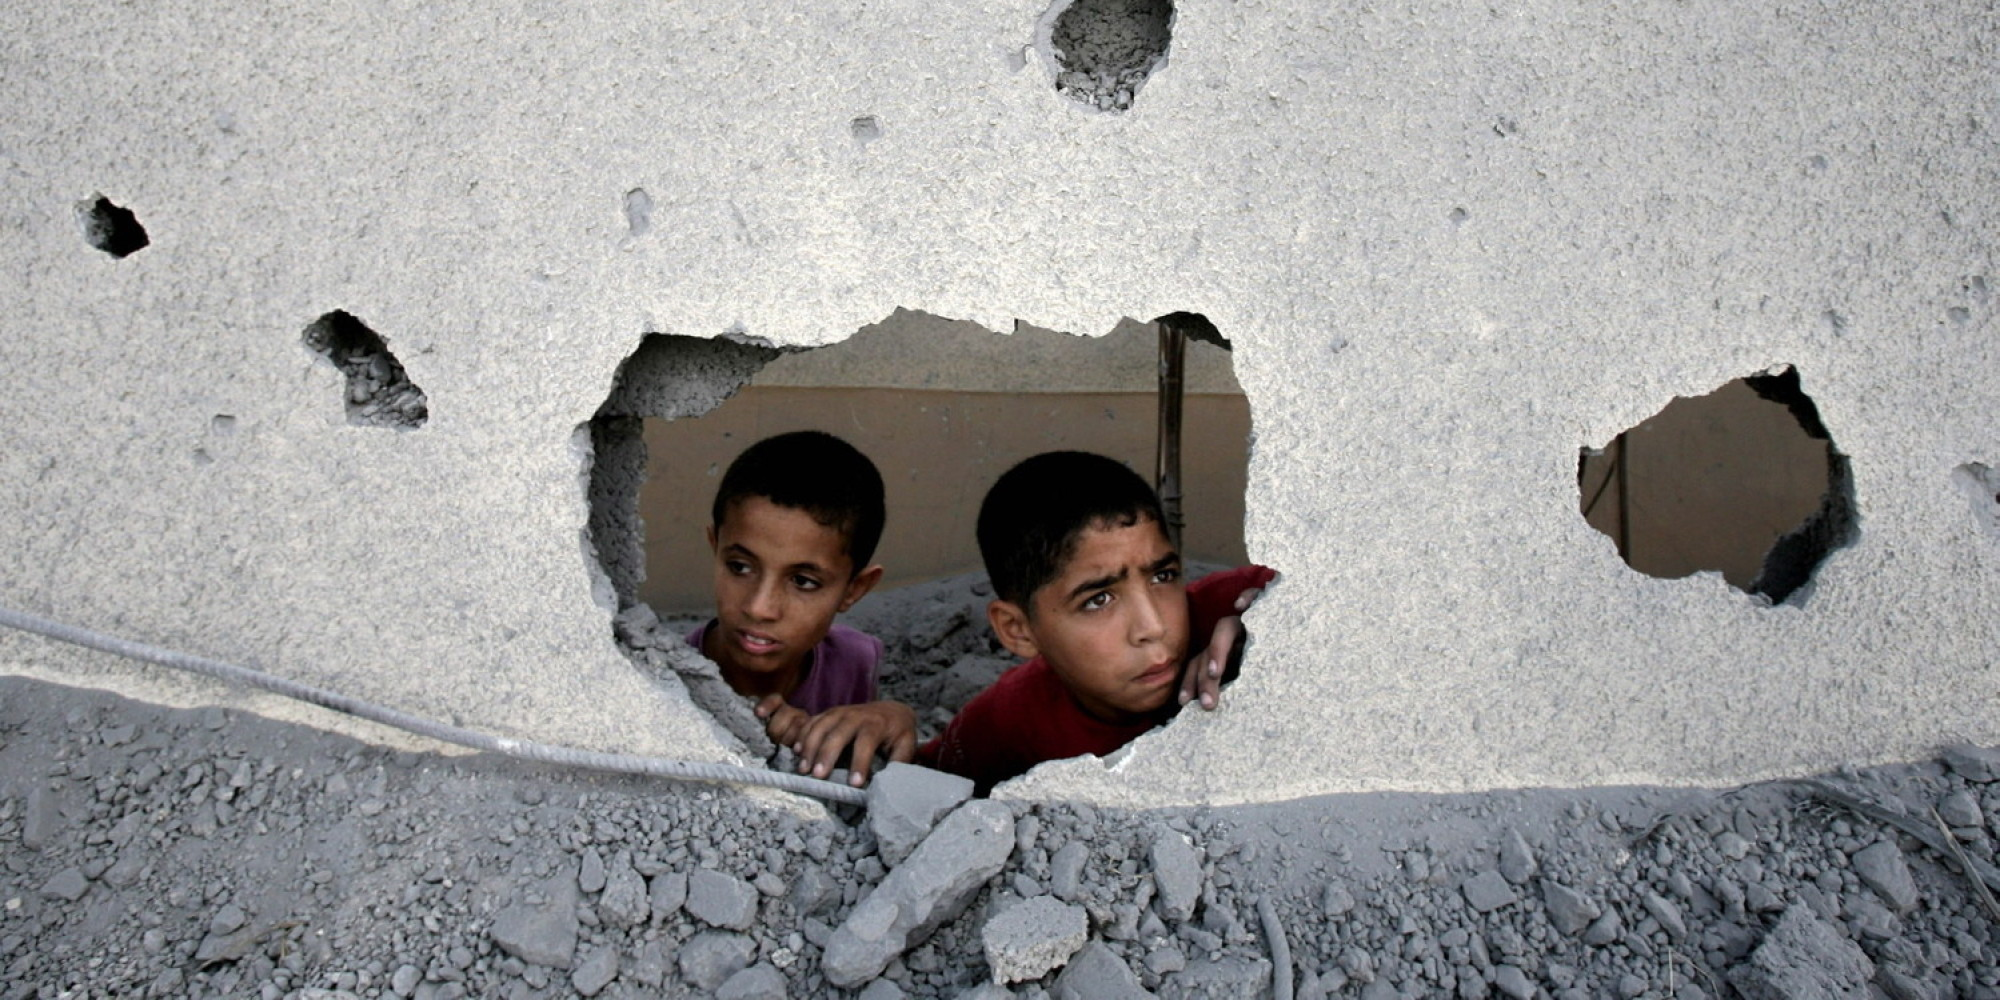 Israel strikes Gaza, killing 11 and injuring scores